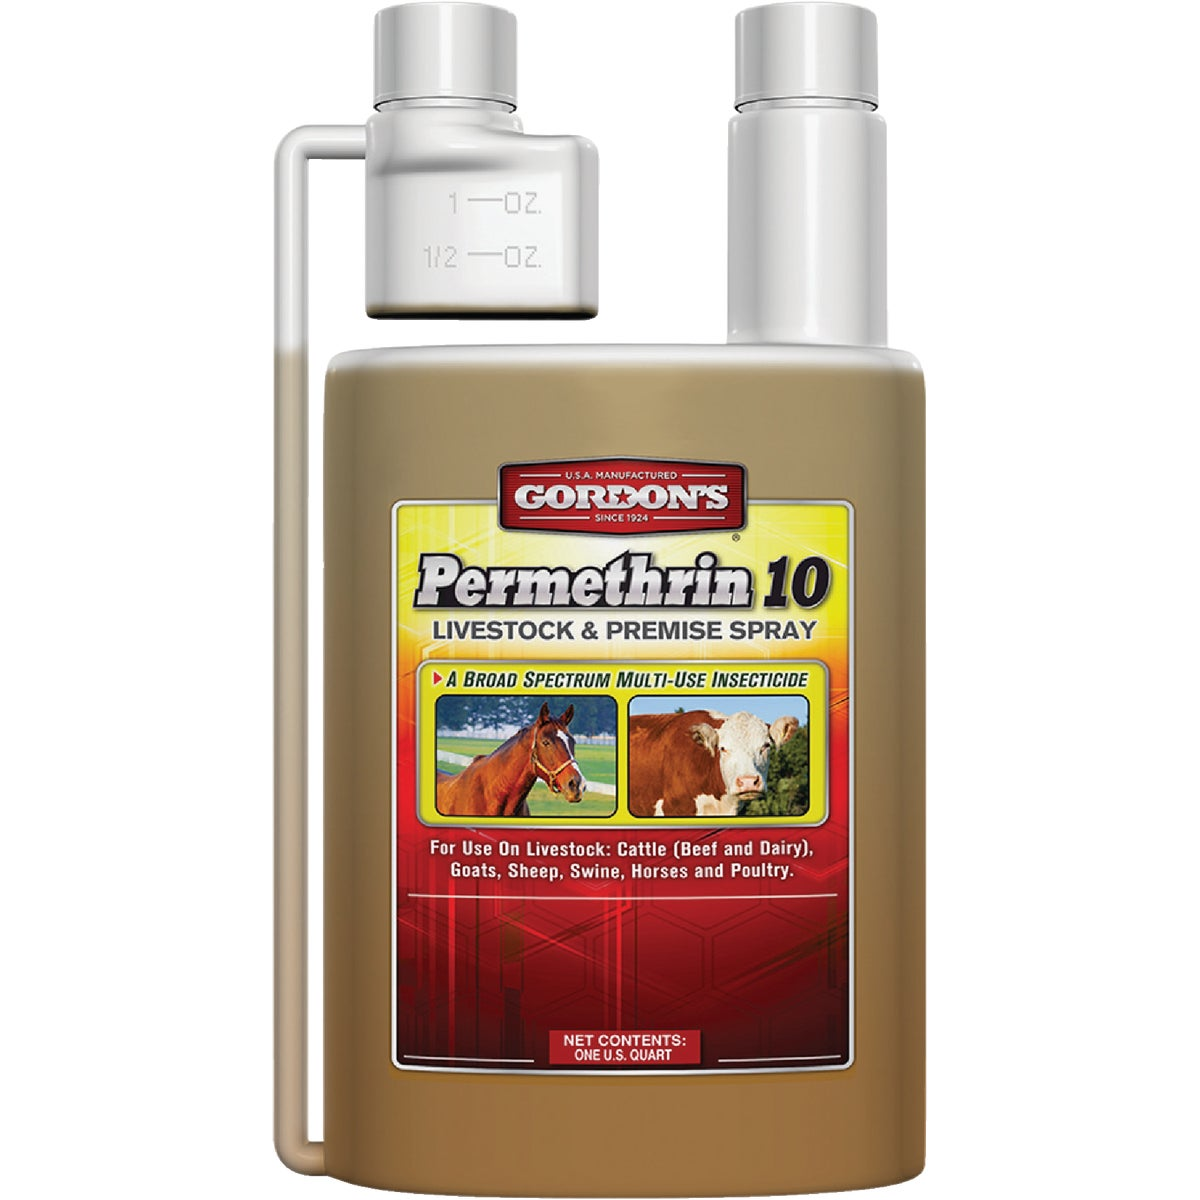 QT PERMETHRIN-10 SPRAY - 9291082 by P B I/gordon Corp